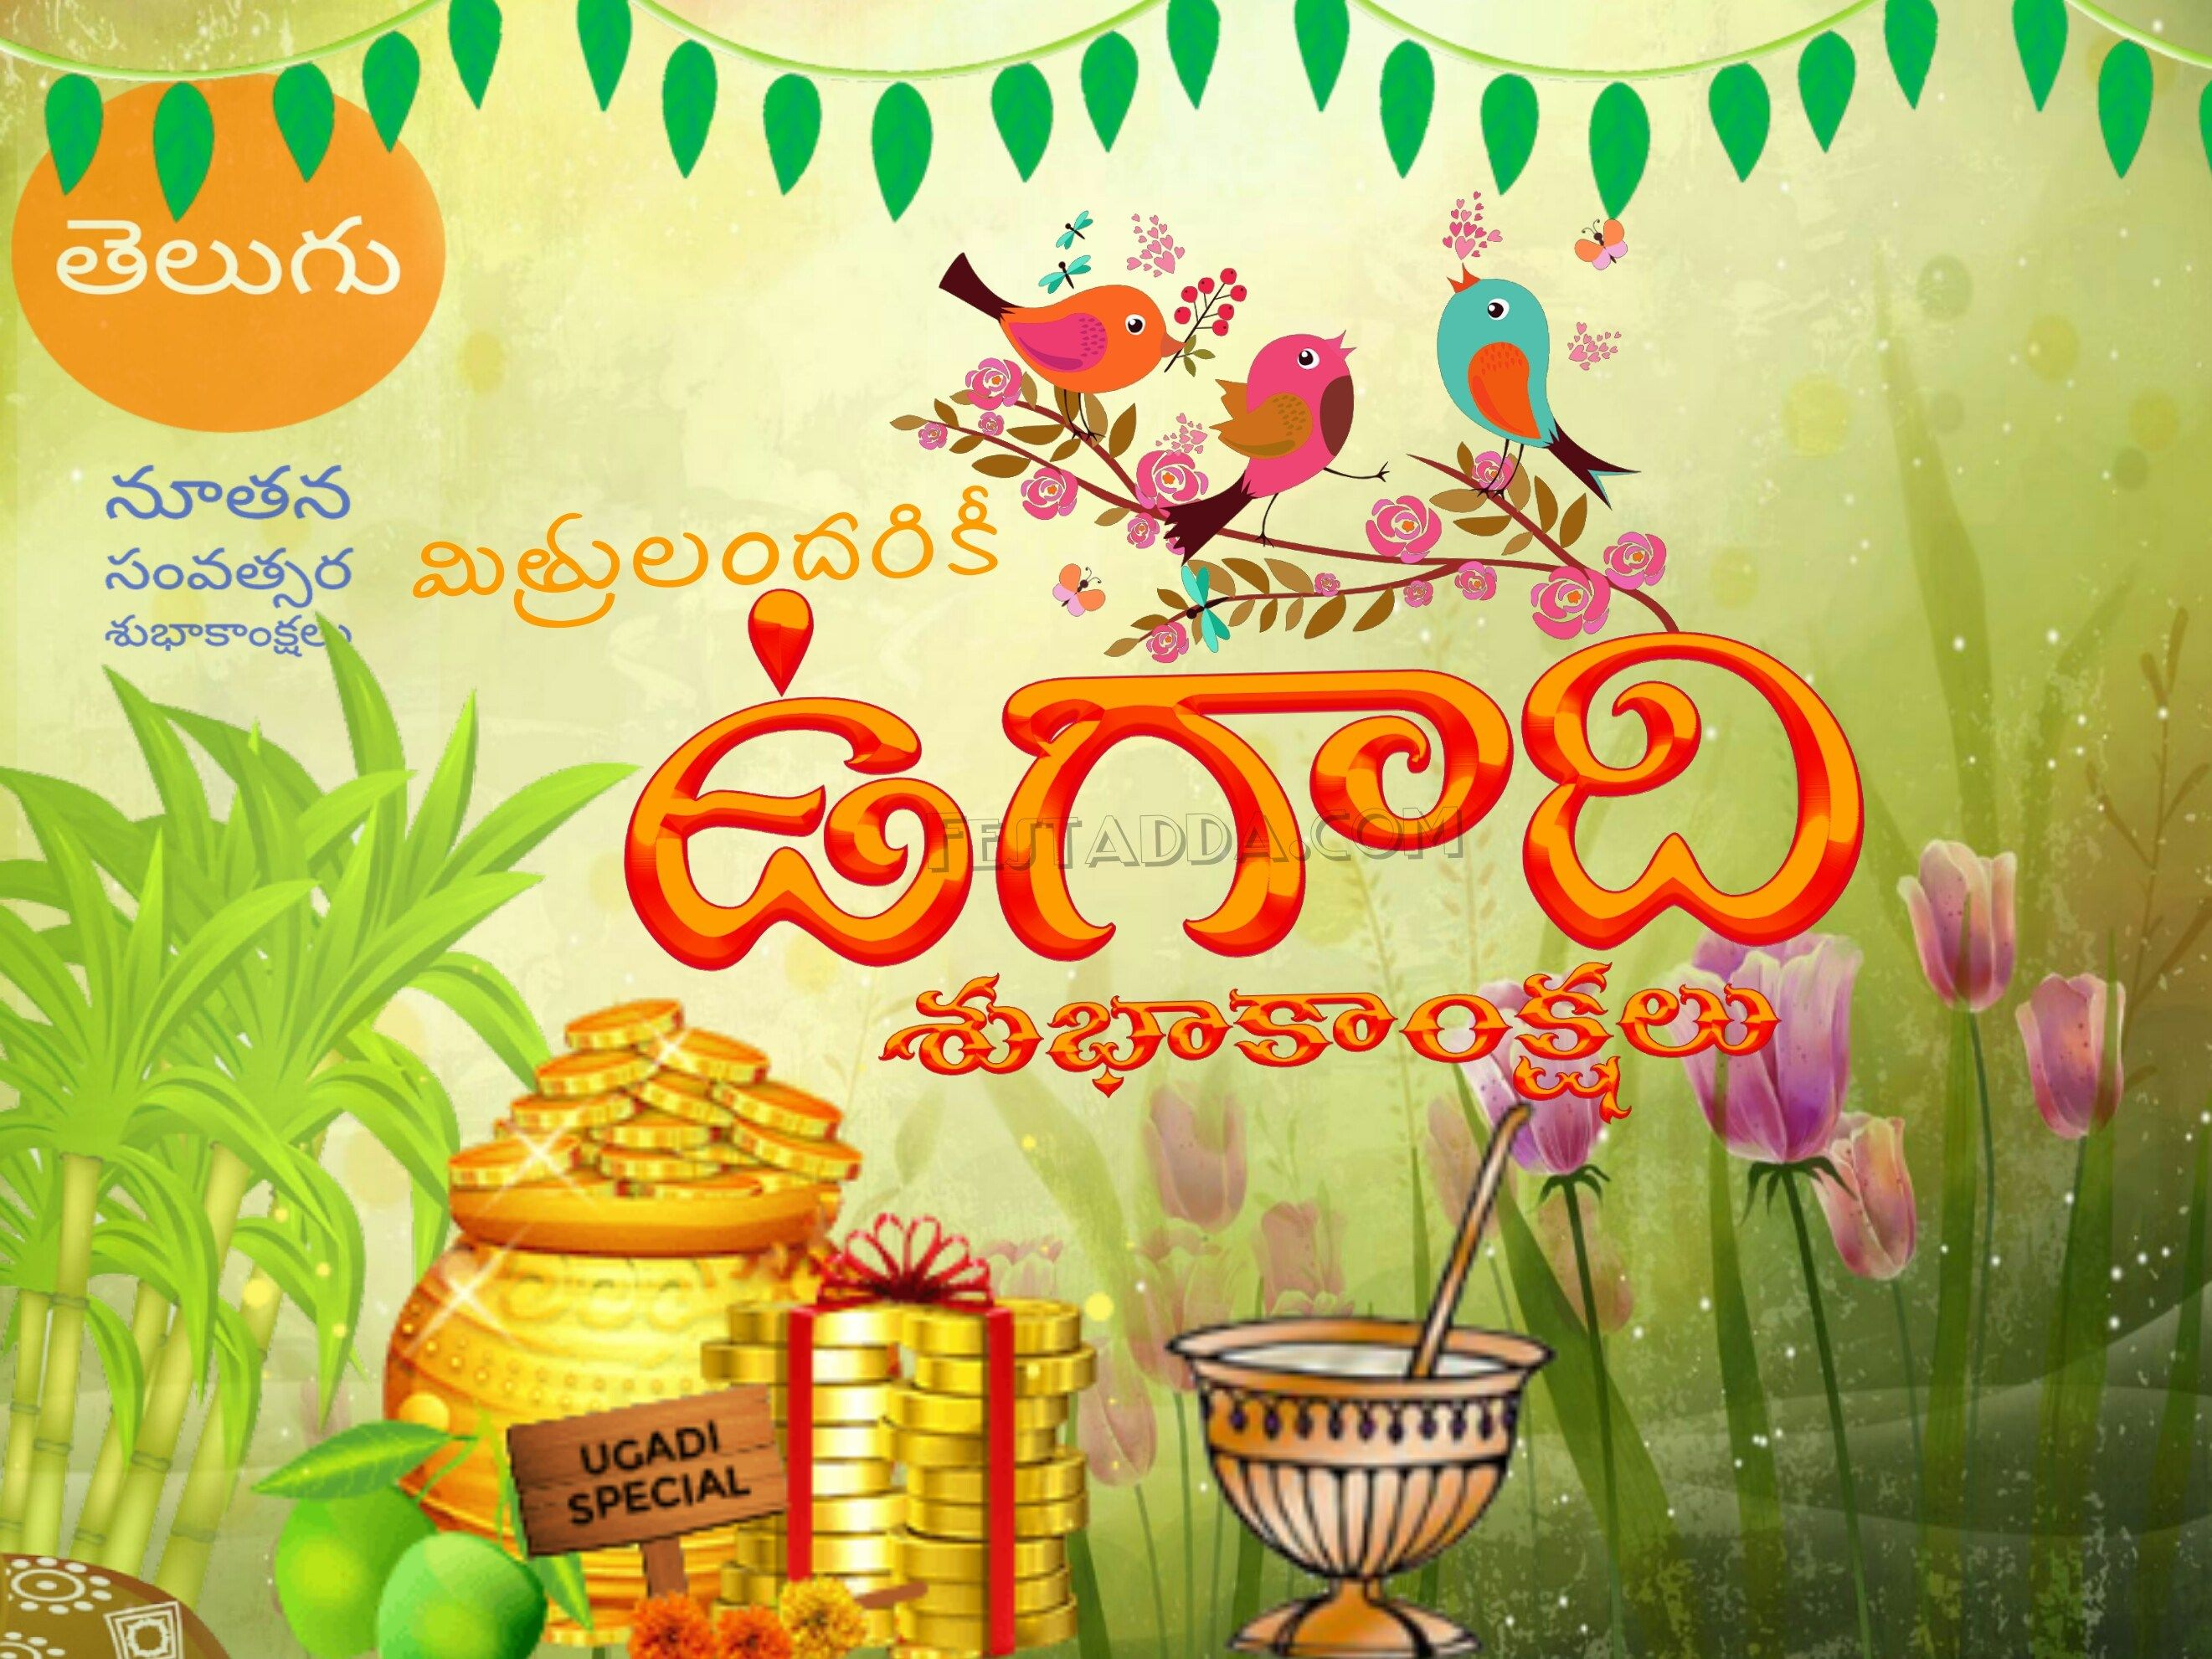 Hearty Welcome To New Year Happy Ugadi 2019 Envius Thoughts